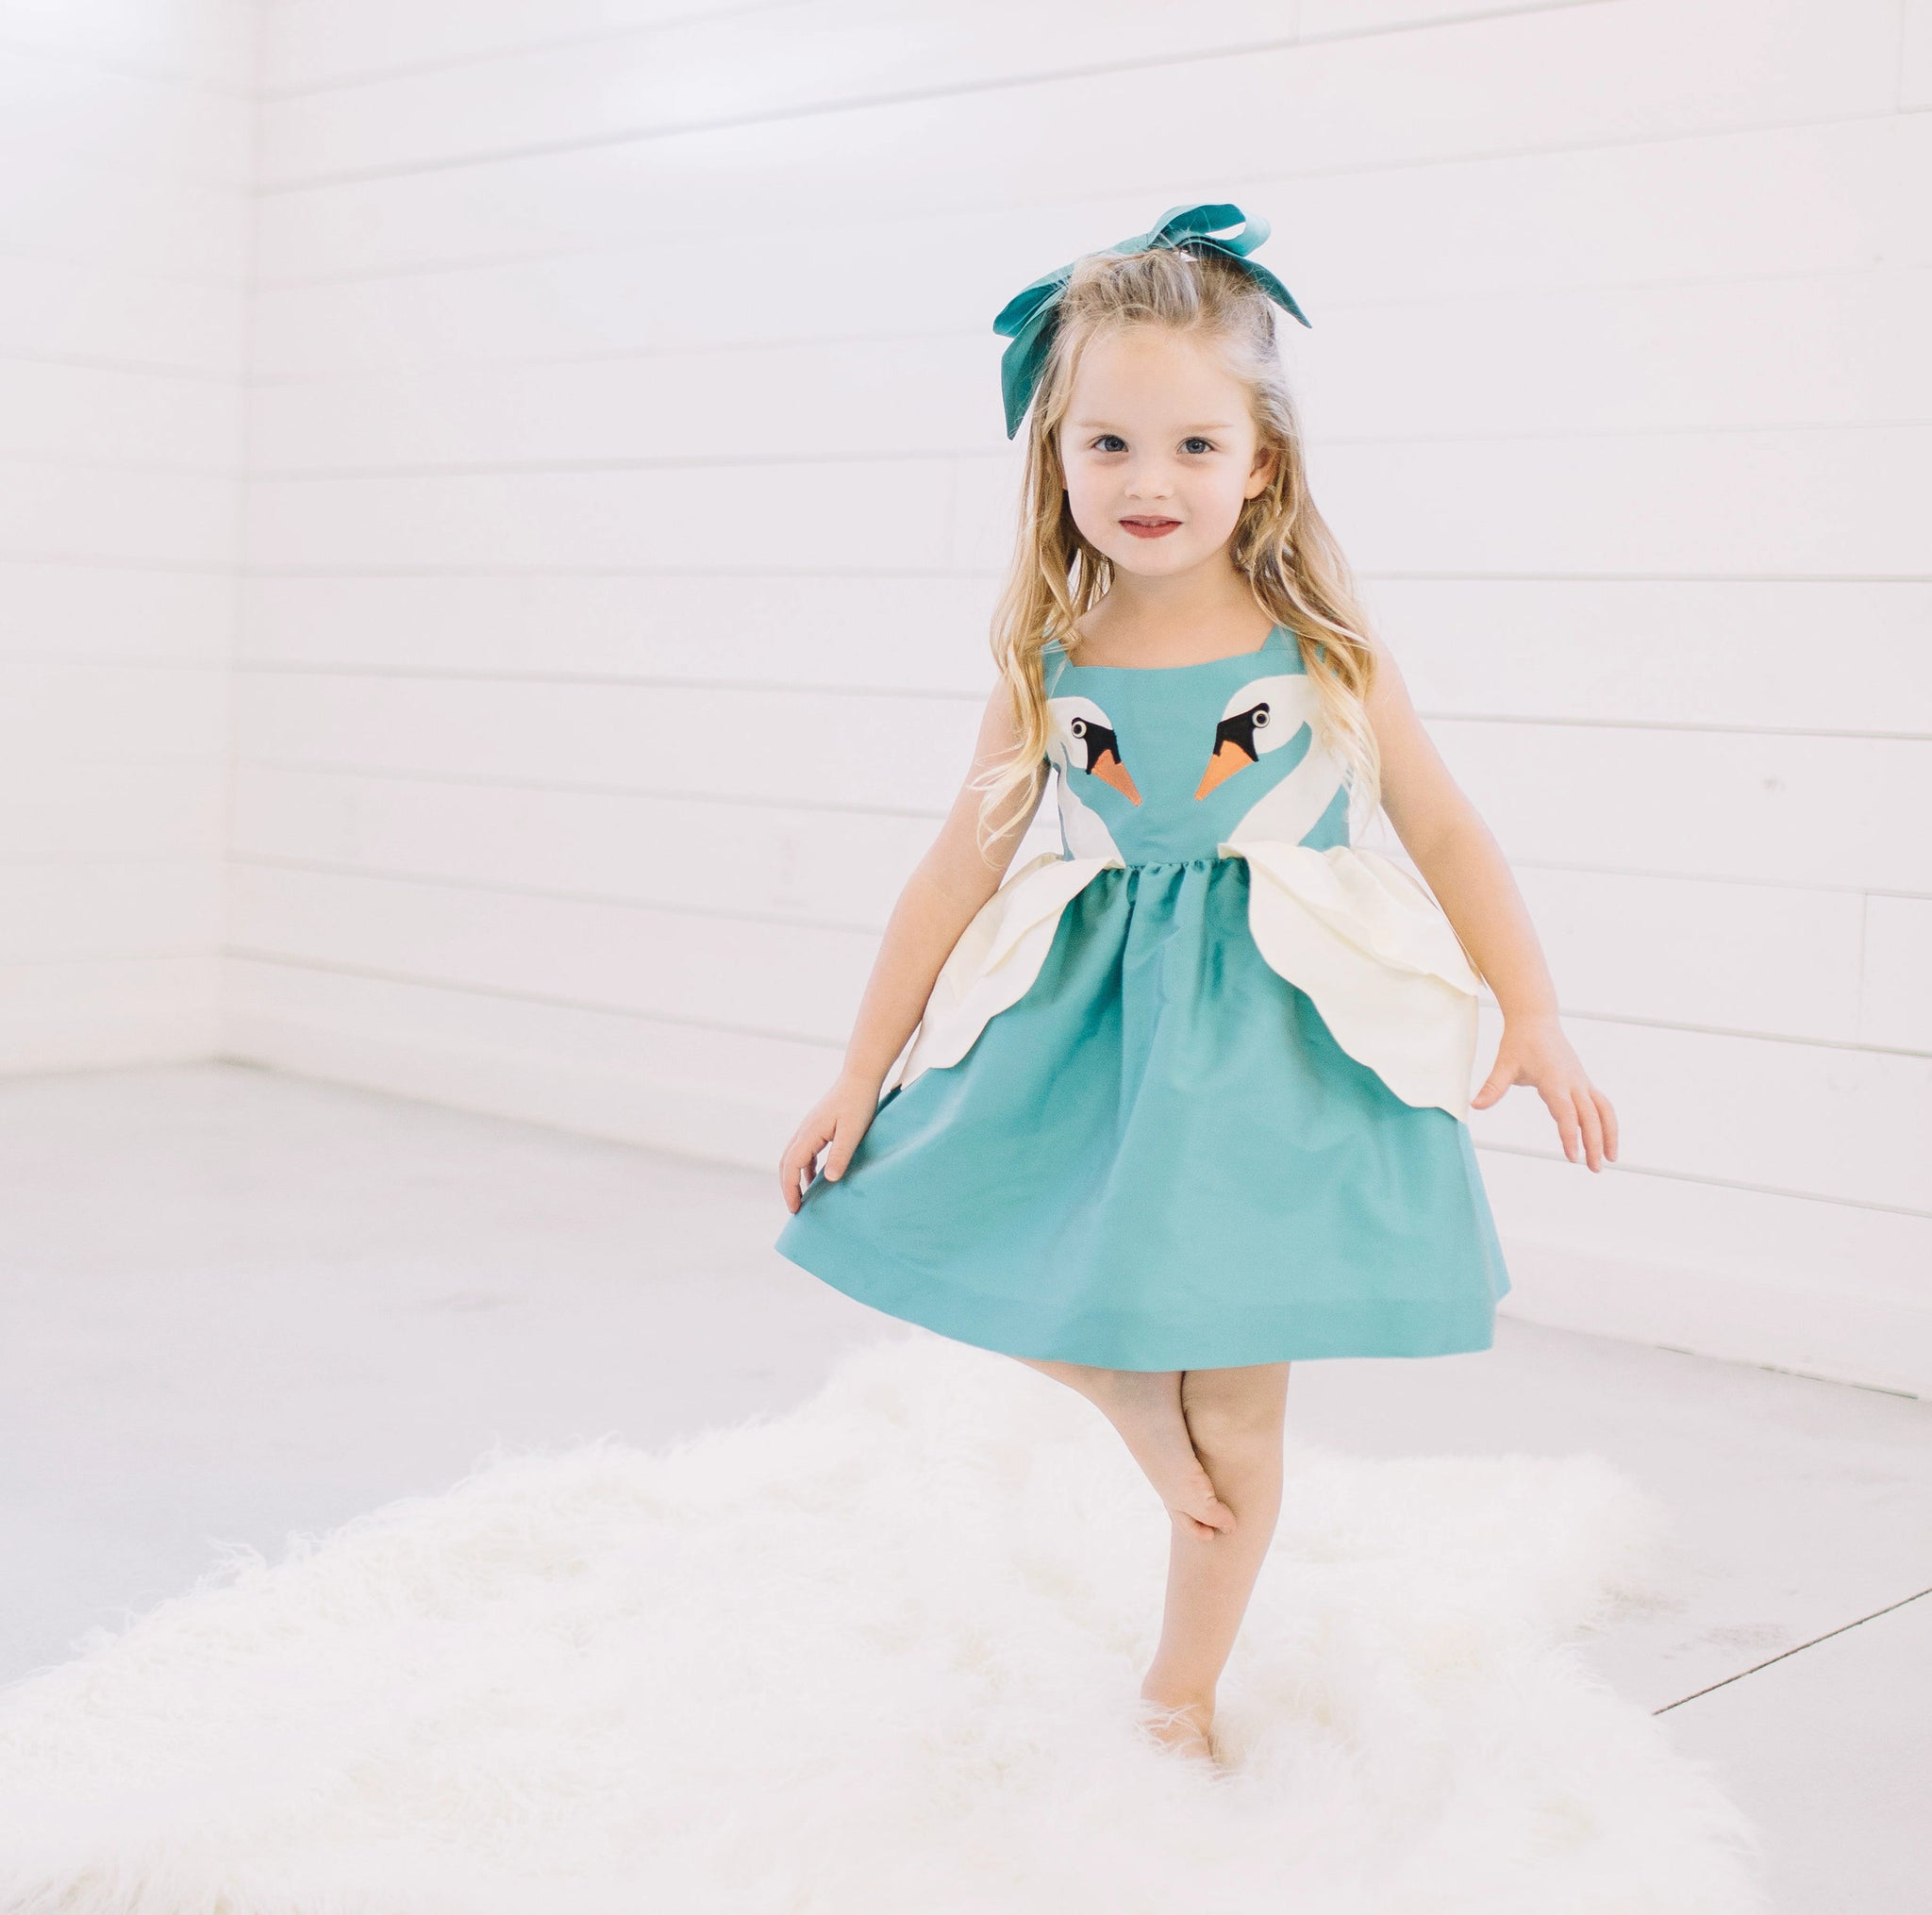 Little Goodall Girl model wearing blue dress with two swans on either side of the dress.